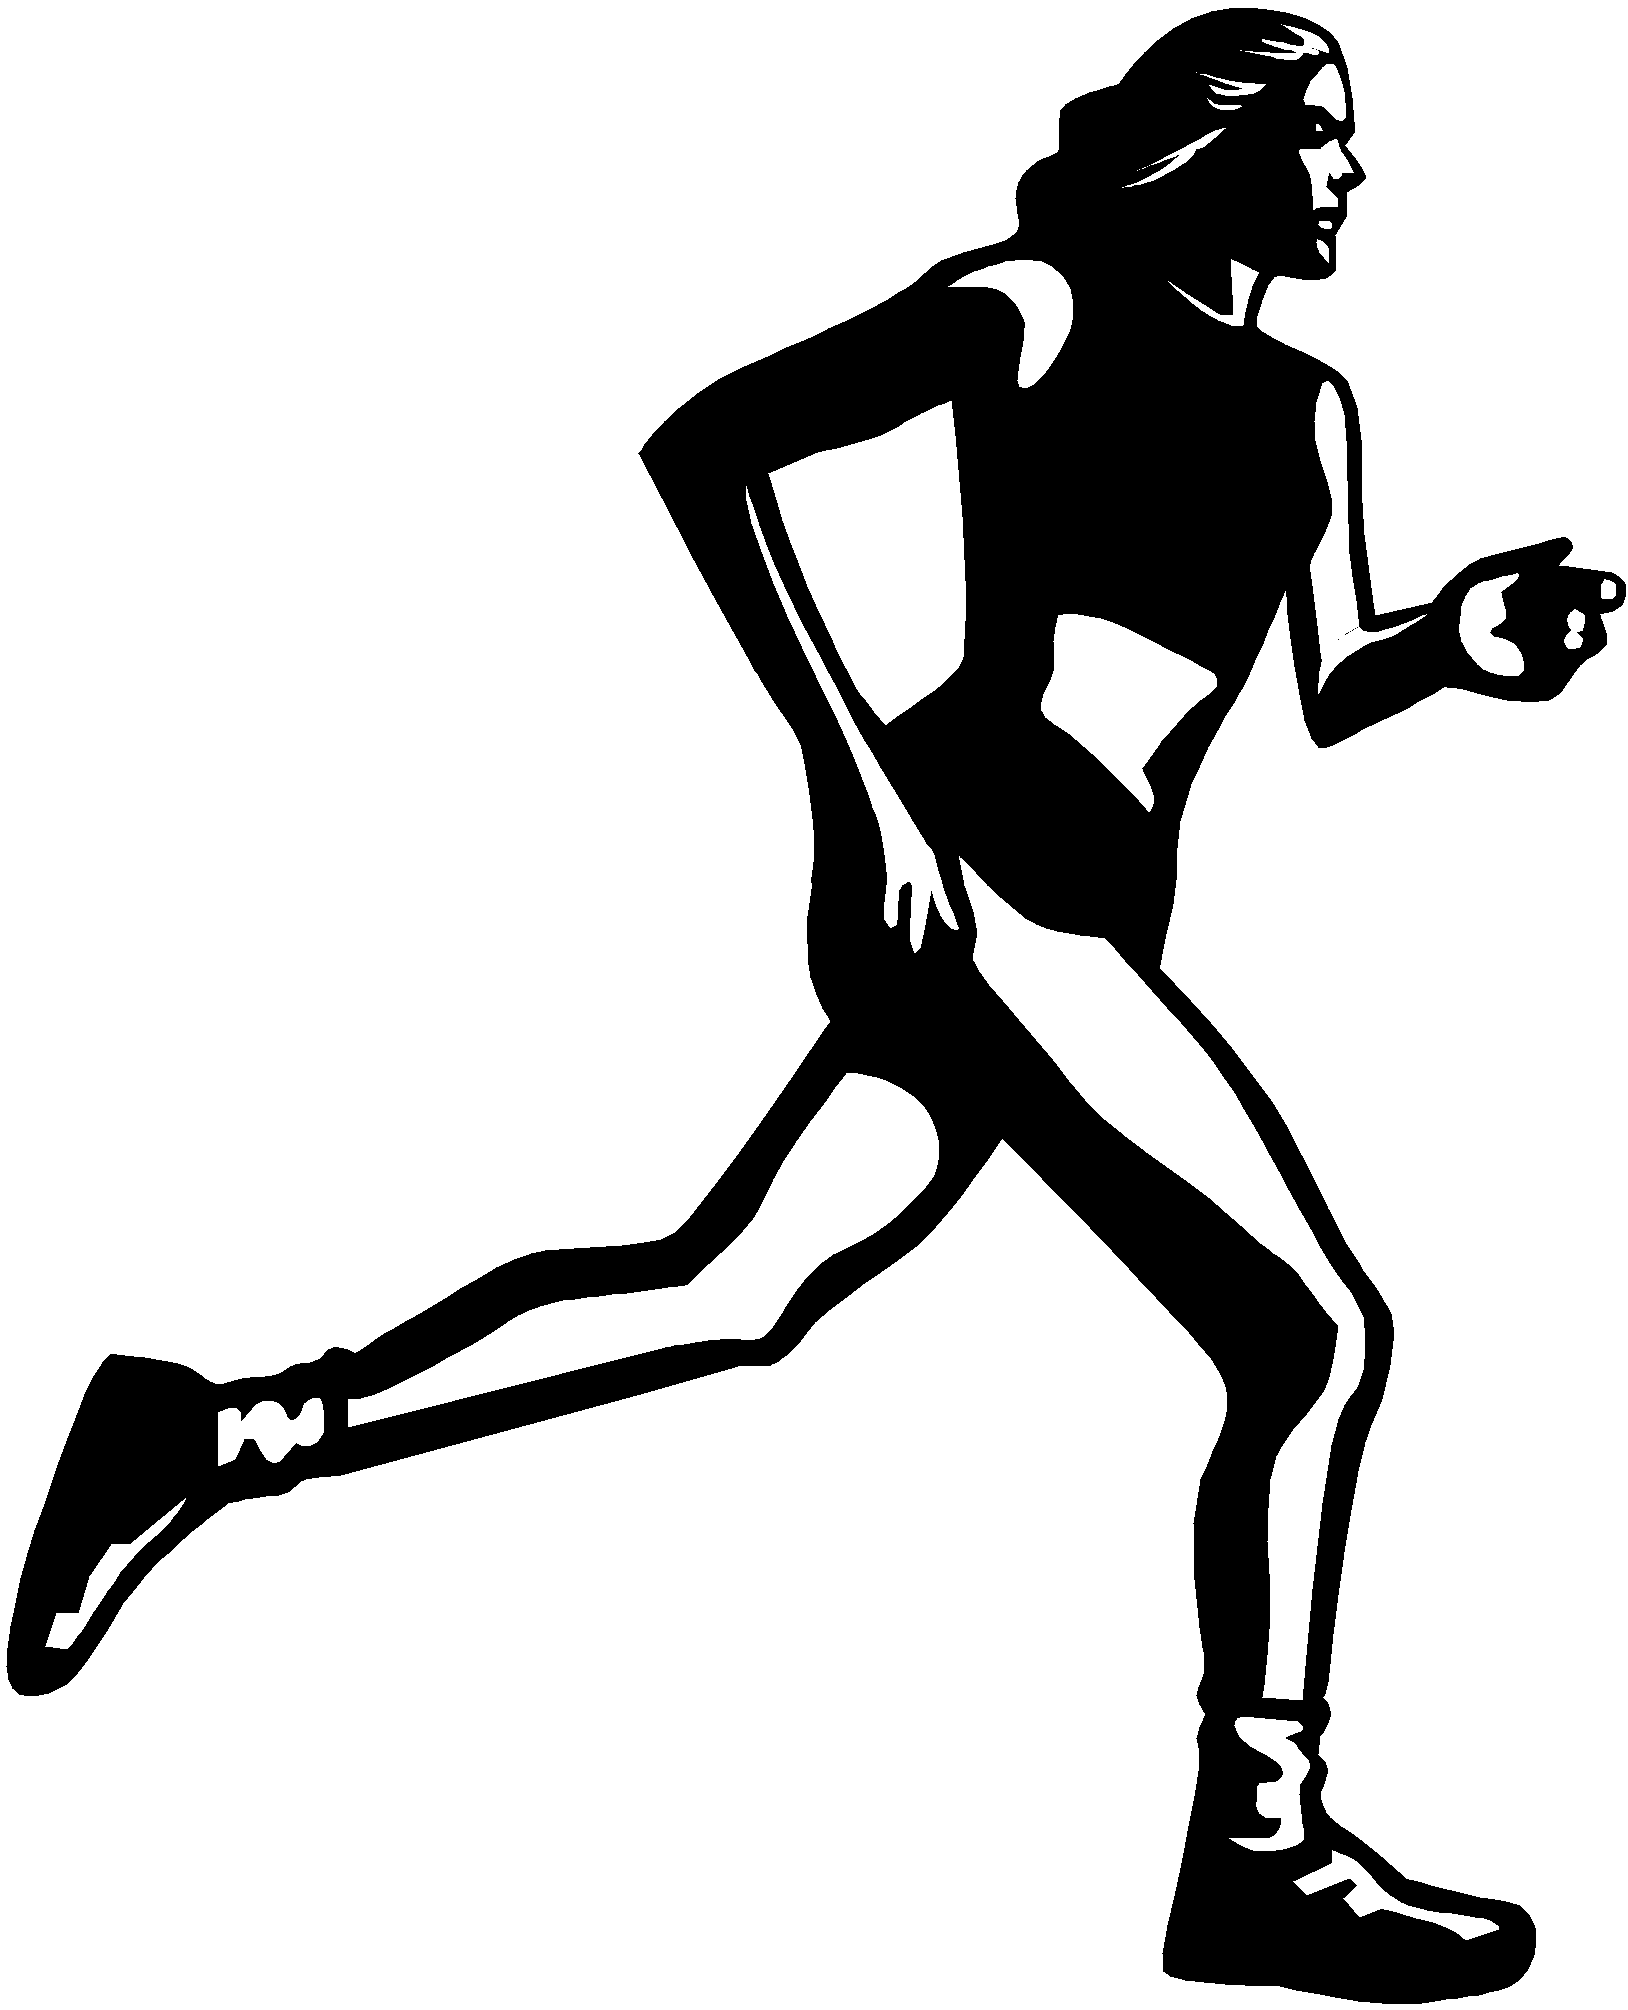 Cross country runner clipart banner black and white stock Cross country runner clipart 7869133 - som300.info banner black and white stock